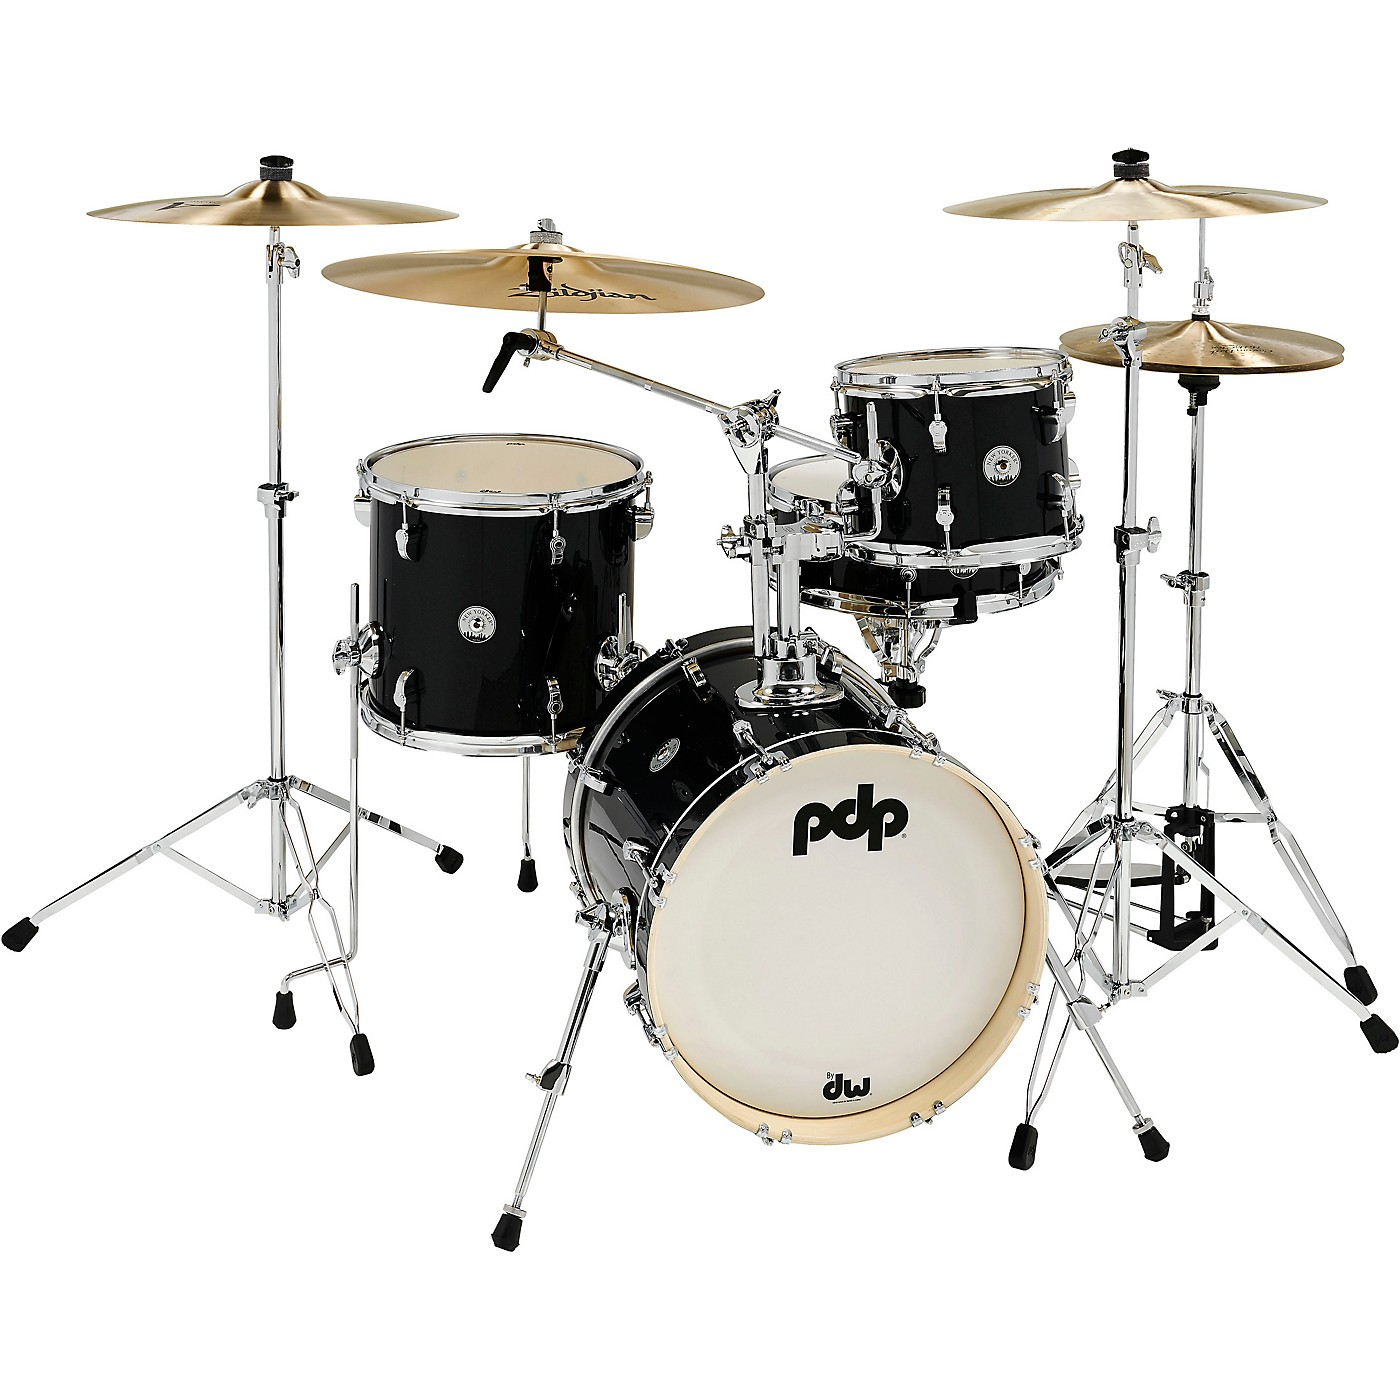 PDP by DW New Yorker 4-Piece Shell Pack w/ 16 in. Bass Drum thumbnail